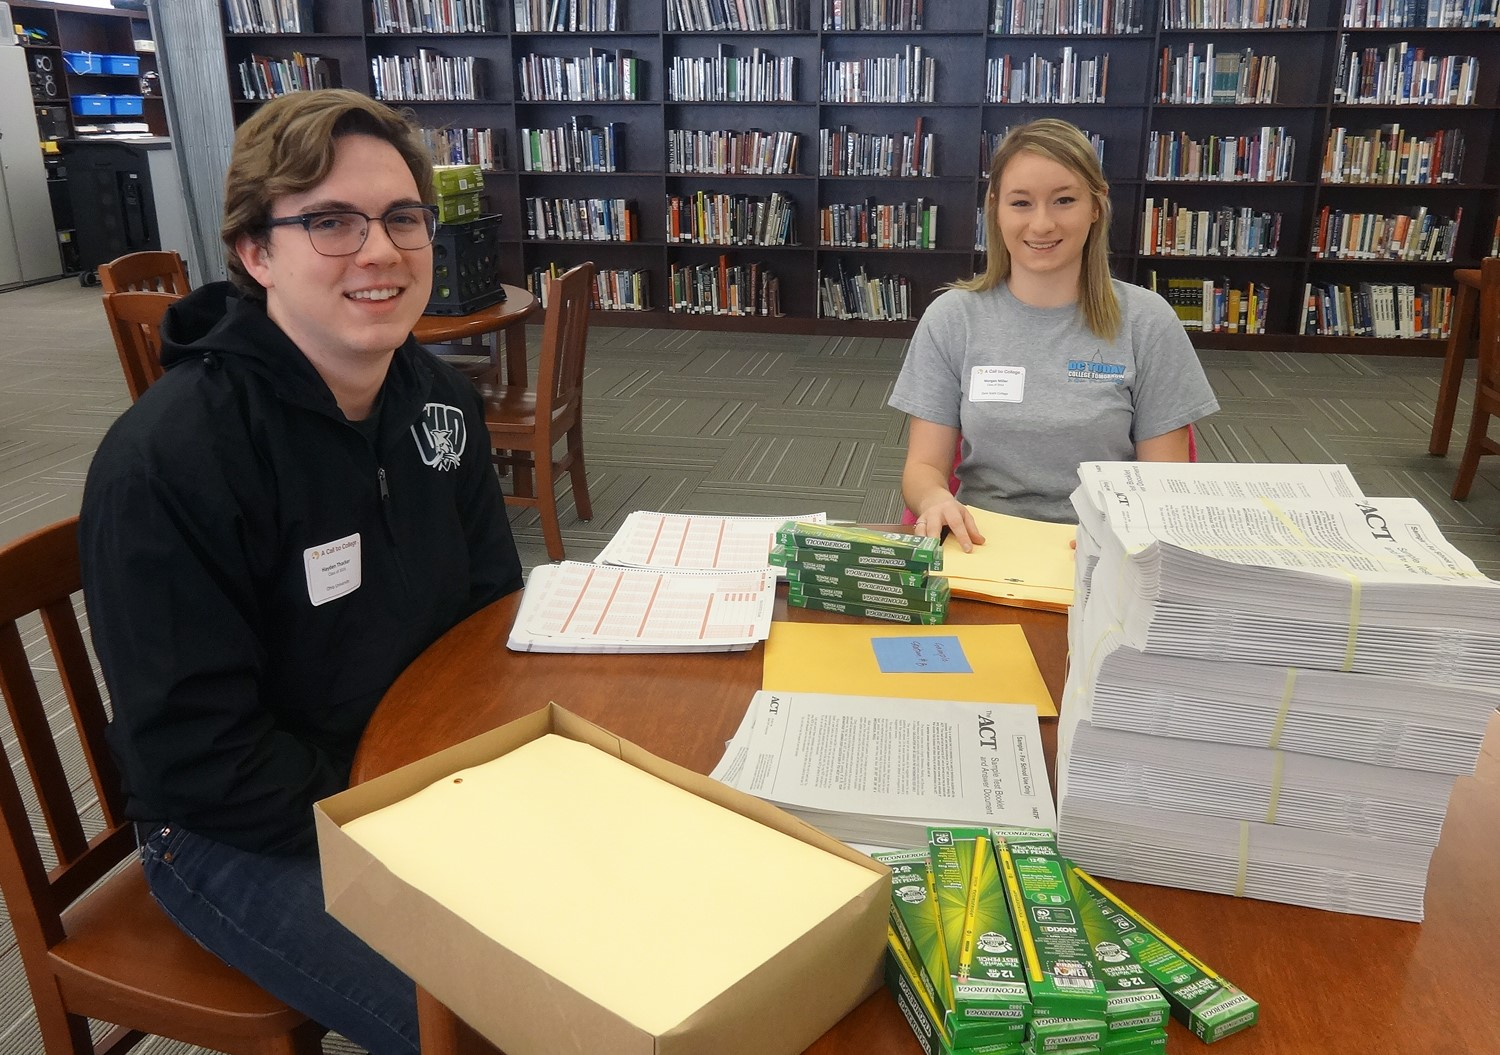 During Grads GIve Back, Last Dollar Grant recipients come back to pay it forward by volunteering